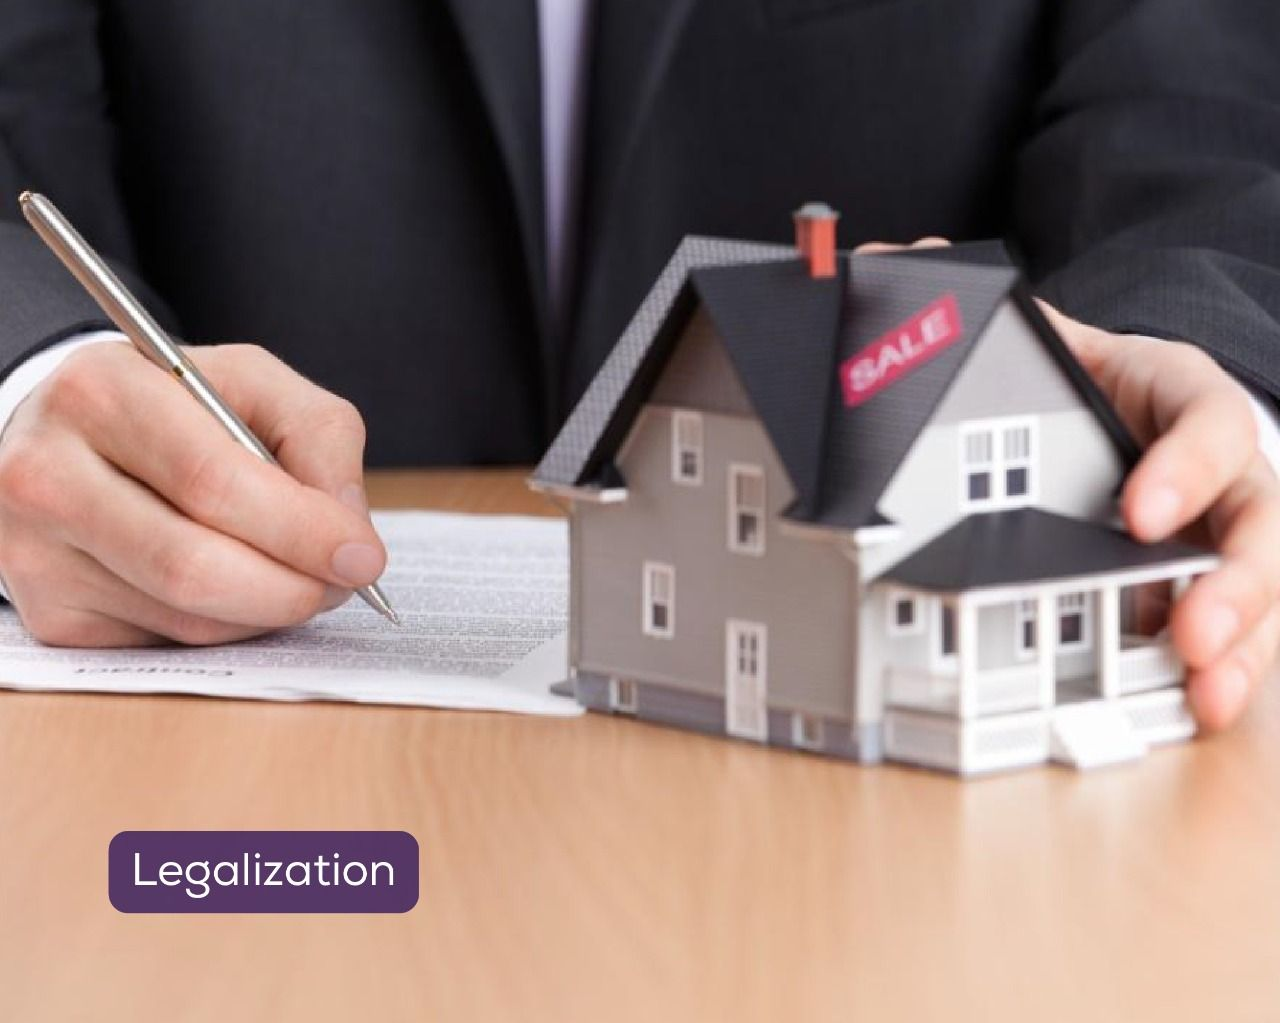 Legal-documentd-of-the-flat-Check-before-buying-flats-in-Mohali